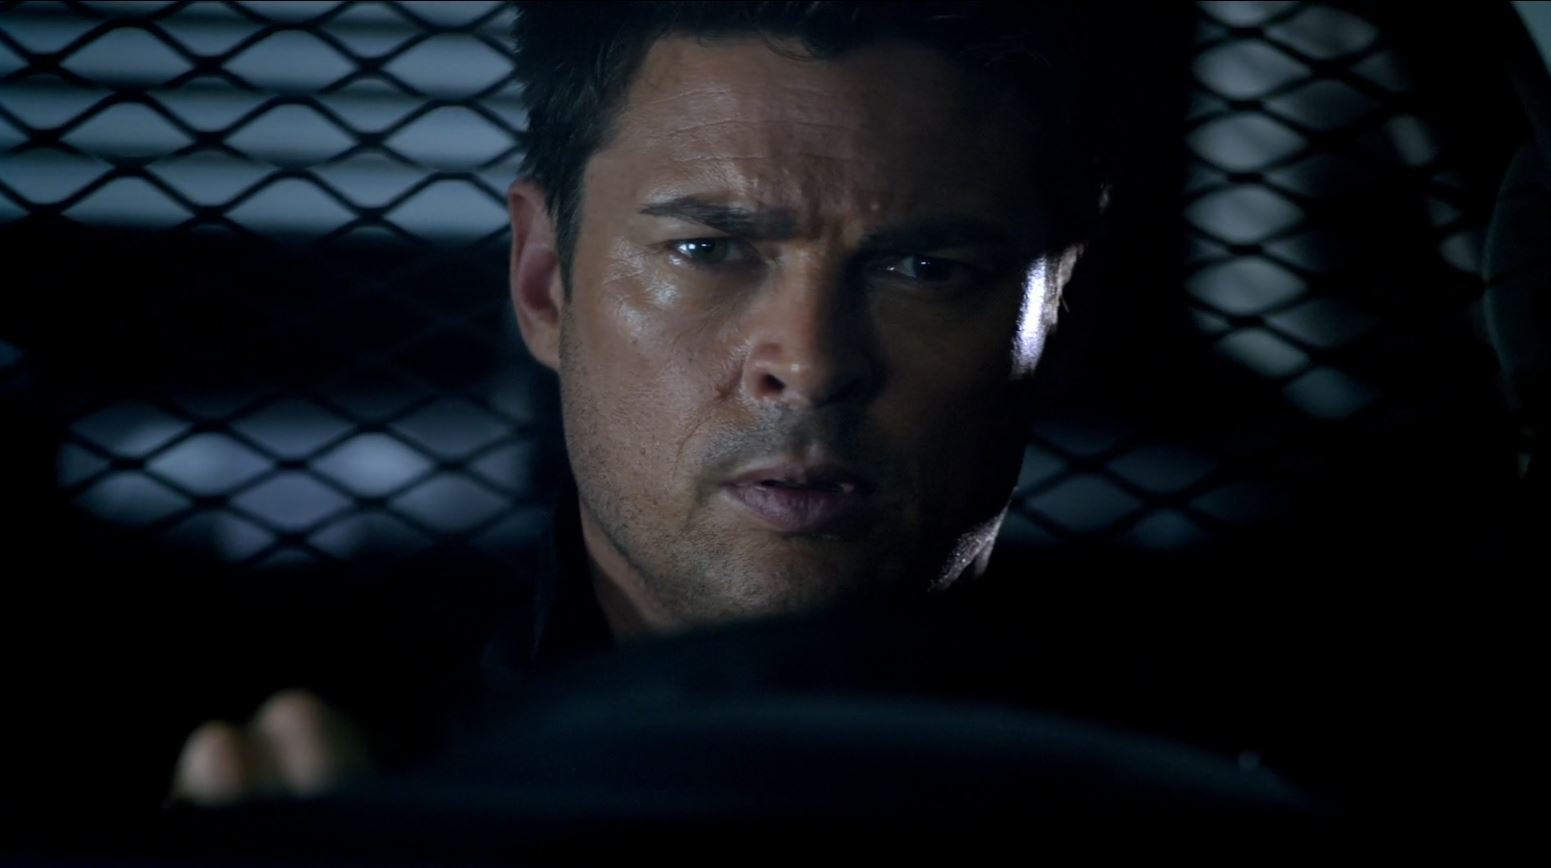 Almost Human - Perception - Karl urban as Kennex suffering from flashbacks